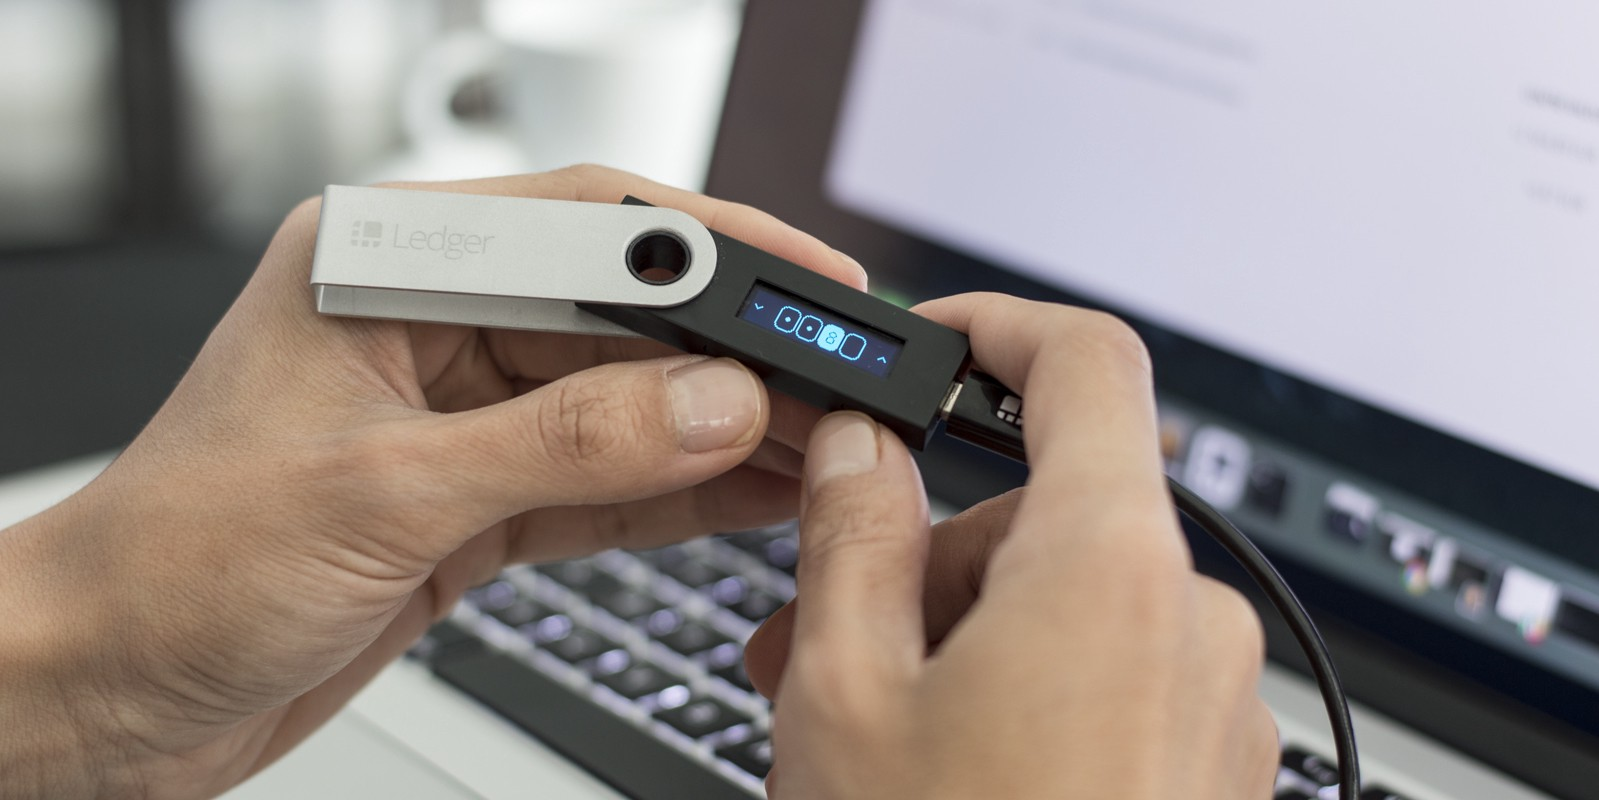 A Step By Guide To Securing Your SSH Keys With The Ledger Nano S